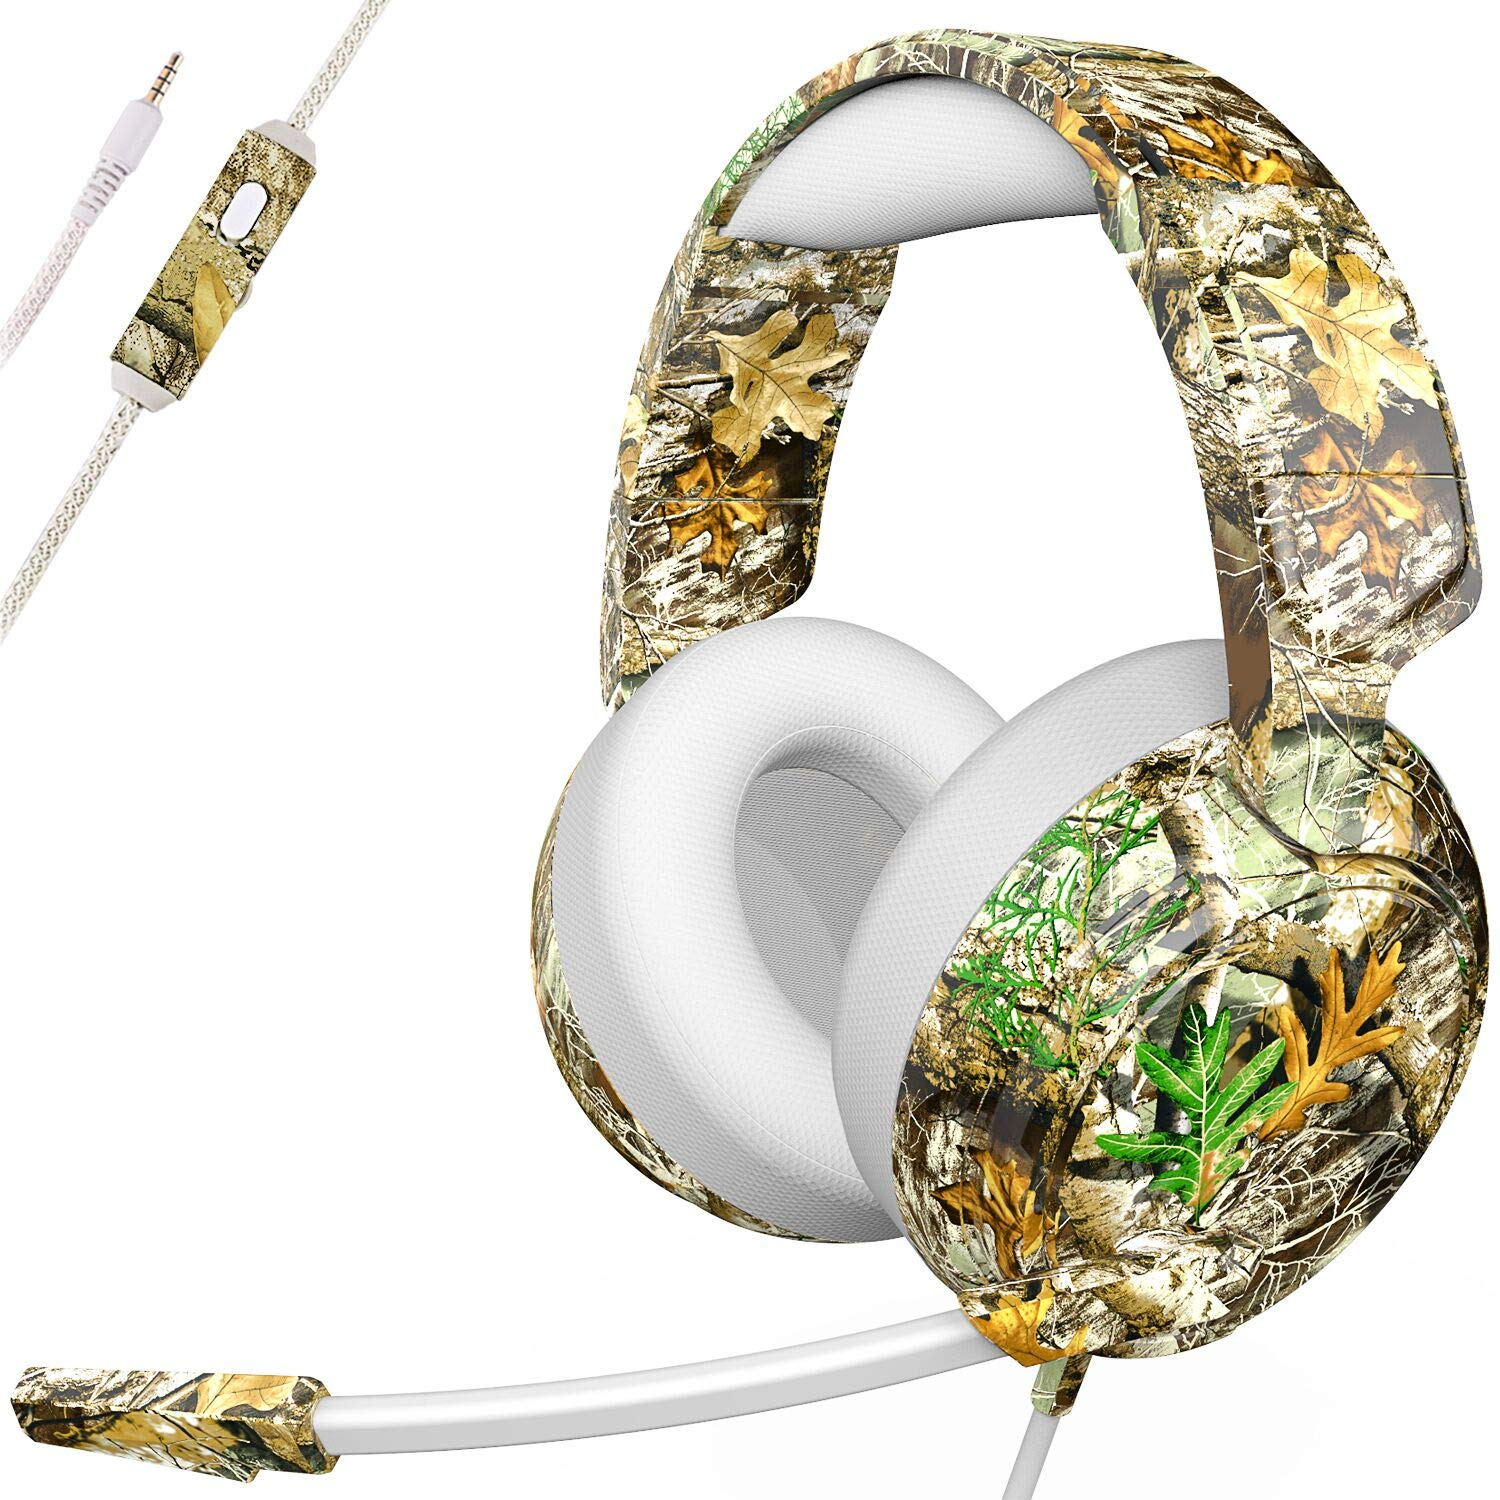 Realtree Stereo Gaming Headset for PS4 Xbox One PC, Over Ear Headphones with Noise Cancelling Mic, 50mm Stereo Driver & Bass Surround Perfect for Computer Video Game Music [Realtree Camo]